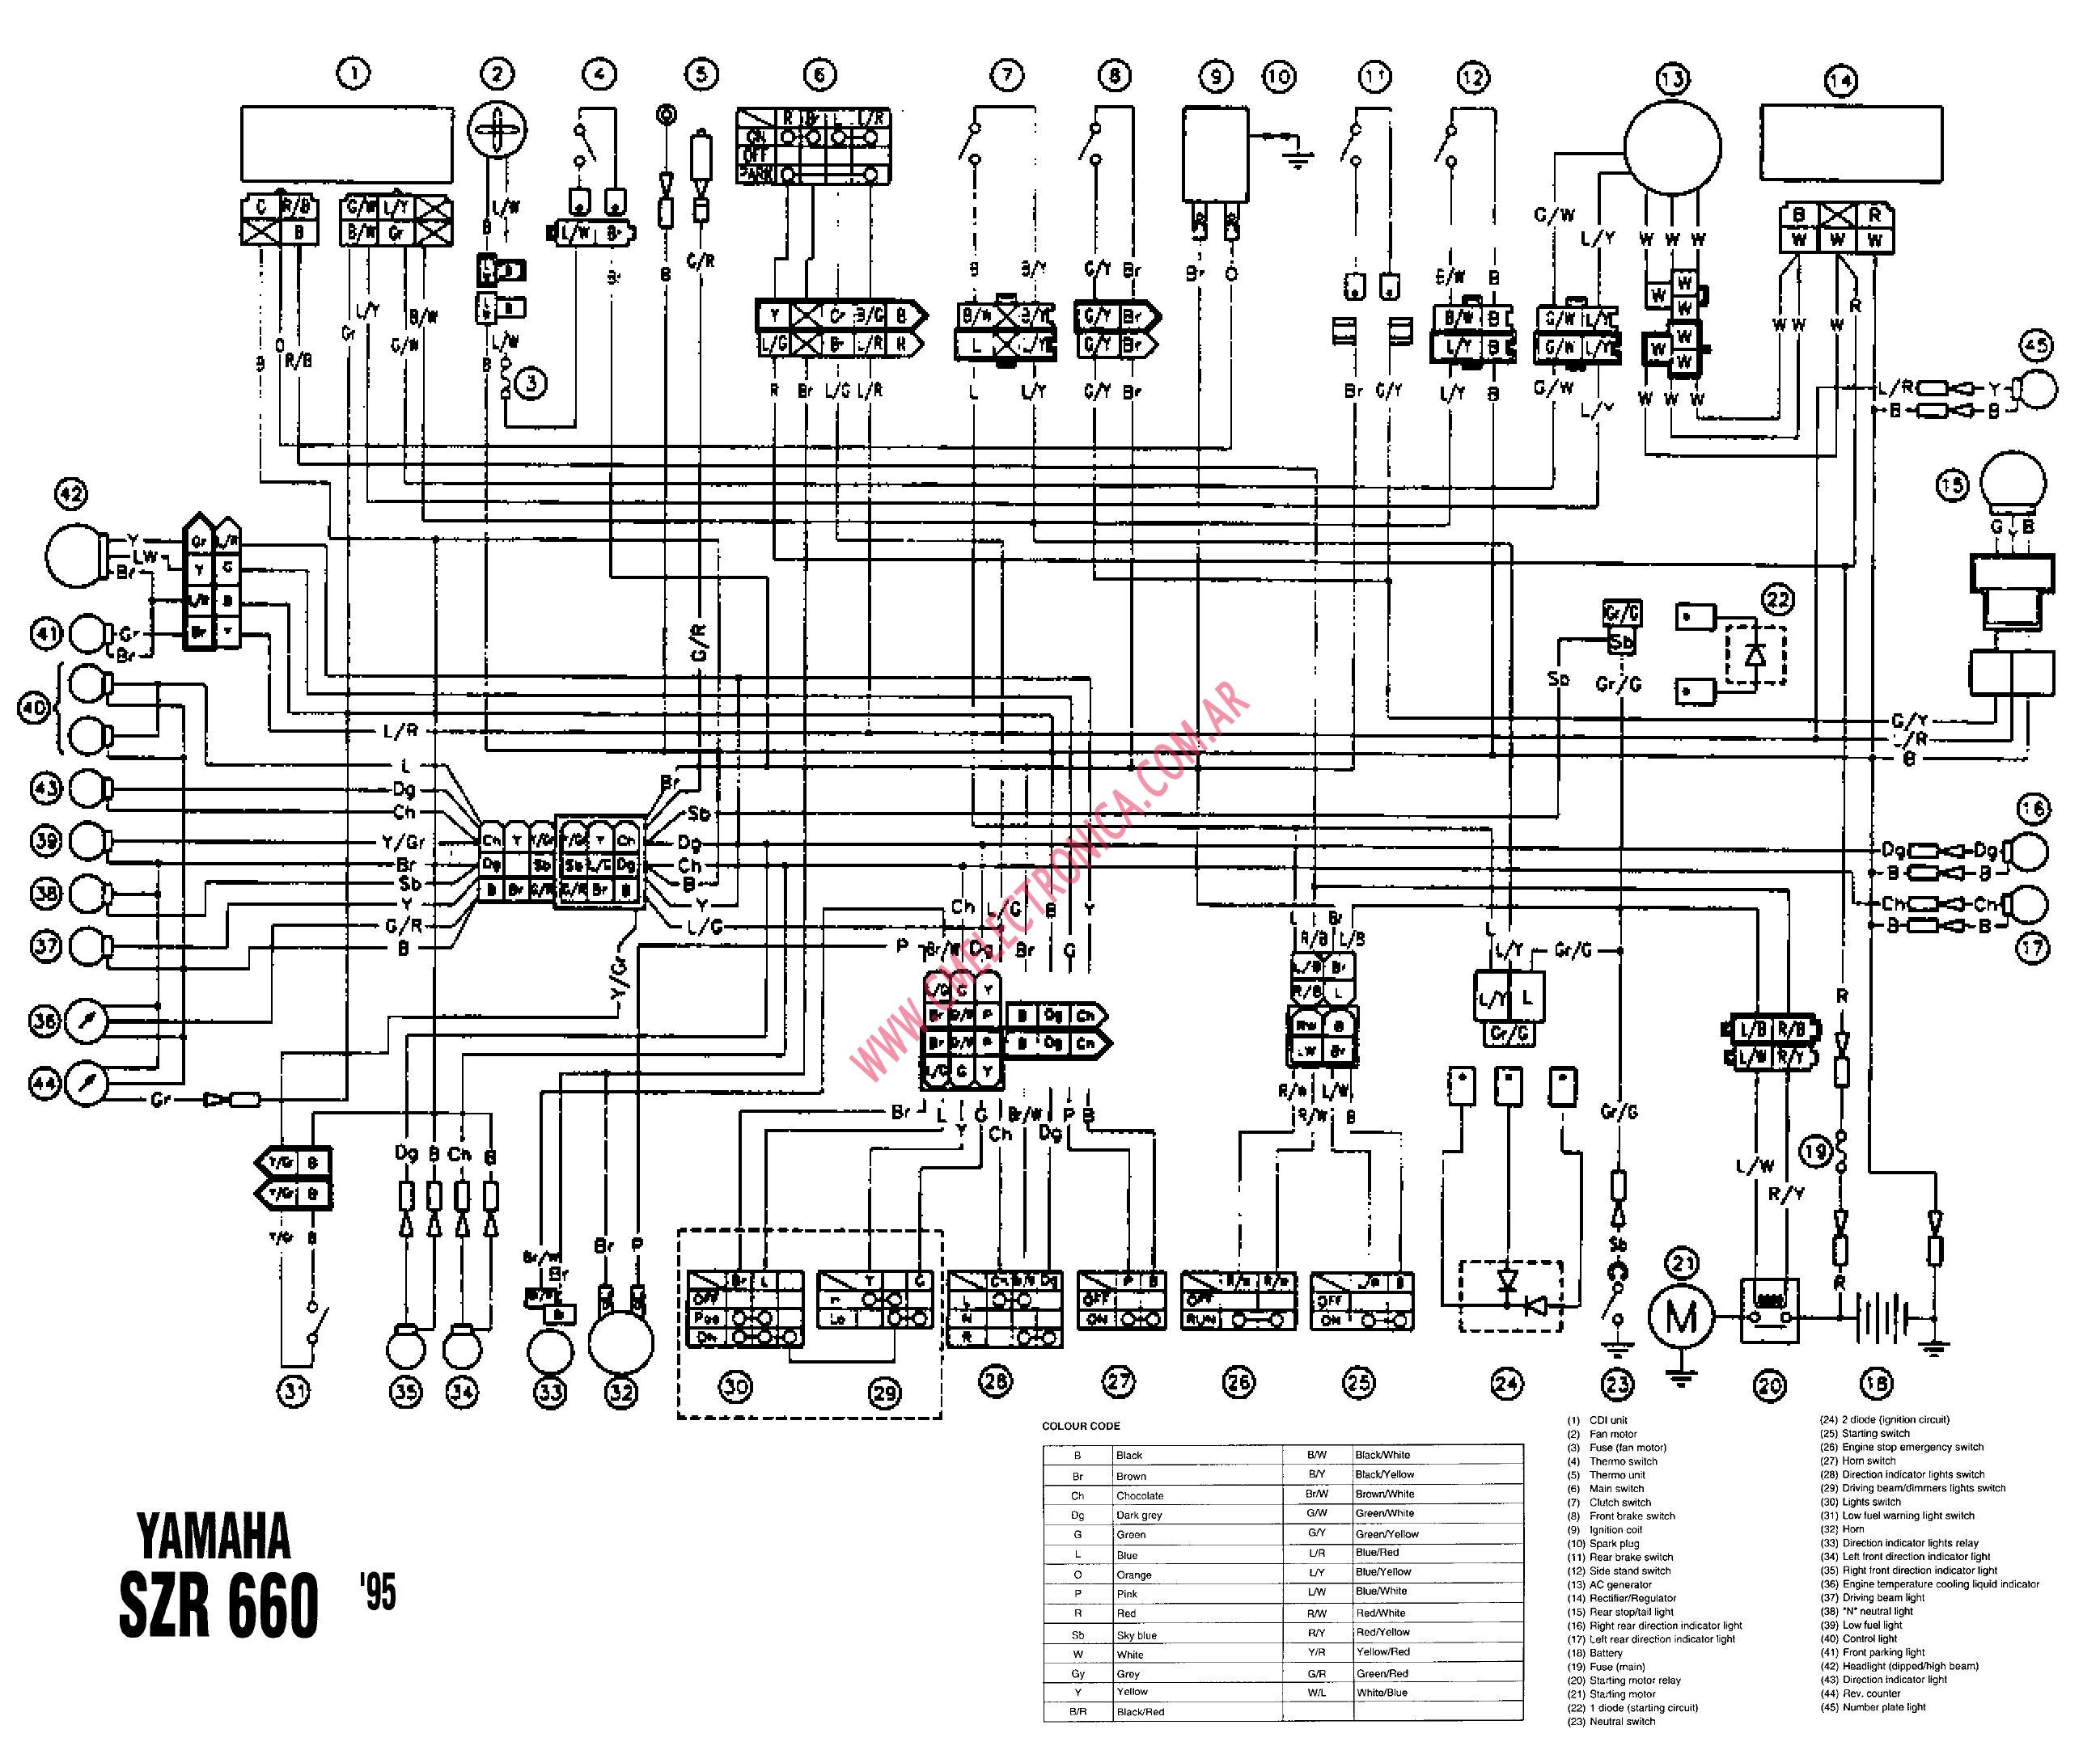 snap yamaha raptor 660 wiring diagram vivresaville com photos on rh  picsnaper com 01 660 Raptor Wiring-Diagram Raptor 660 Starter Diagram Full